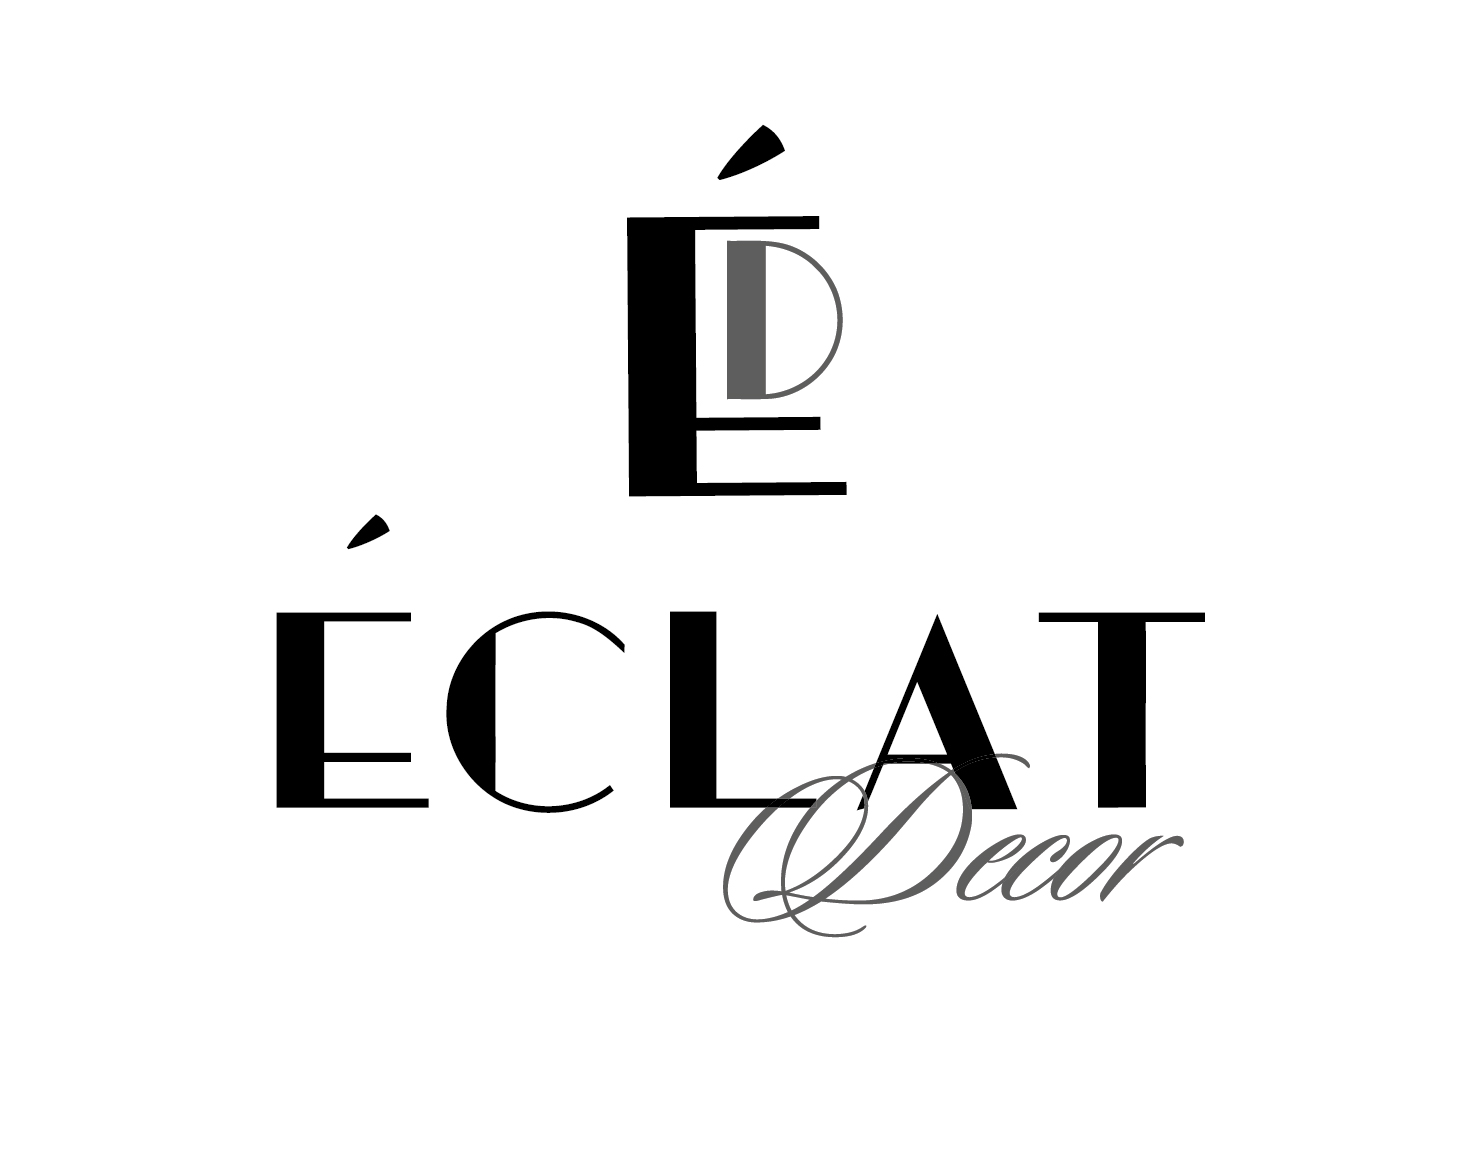 Logo Design by VENTSISLAV KOVACHEV - Entry No. 30 in the Logo Design Contest Imaginative Logo Design for Éclat Decor.